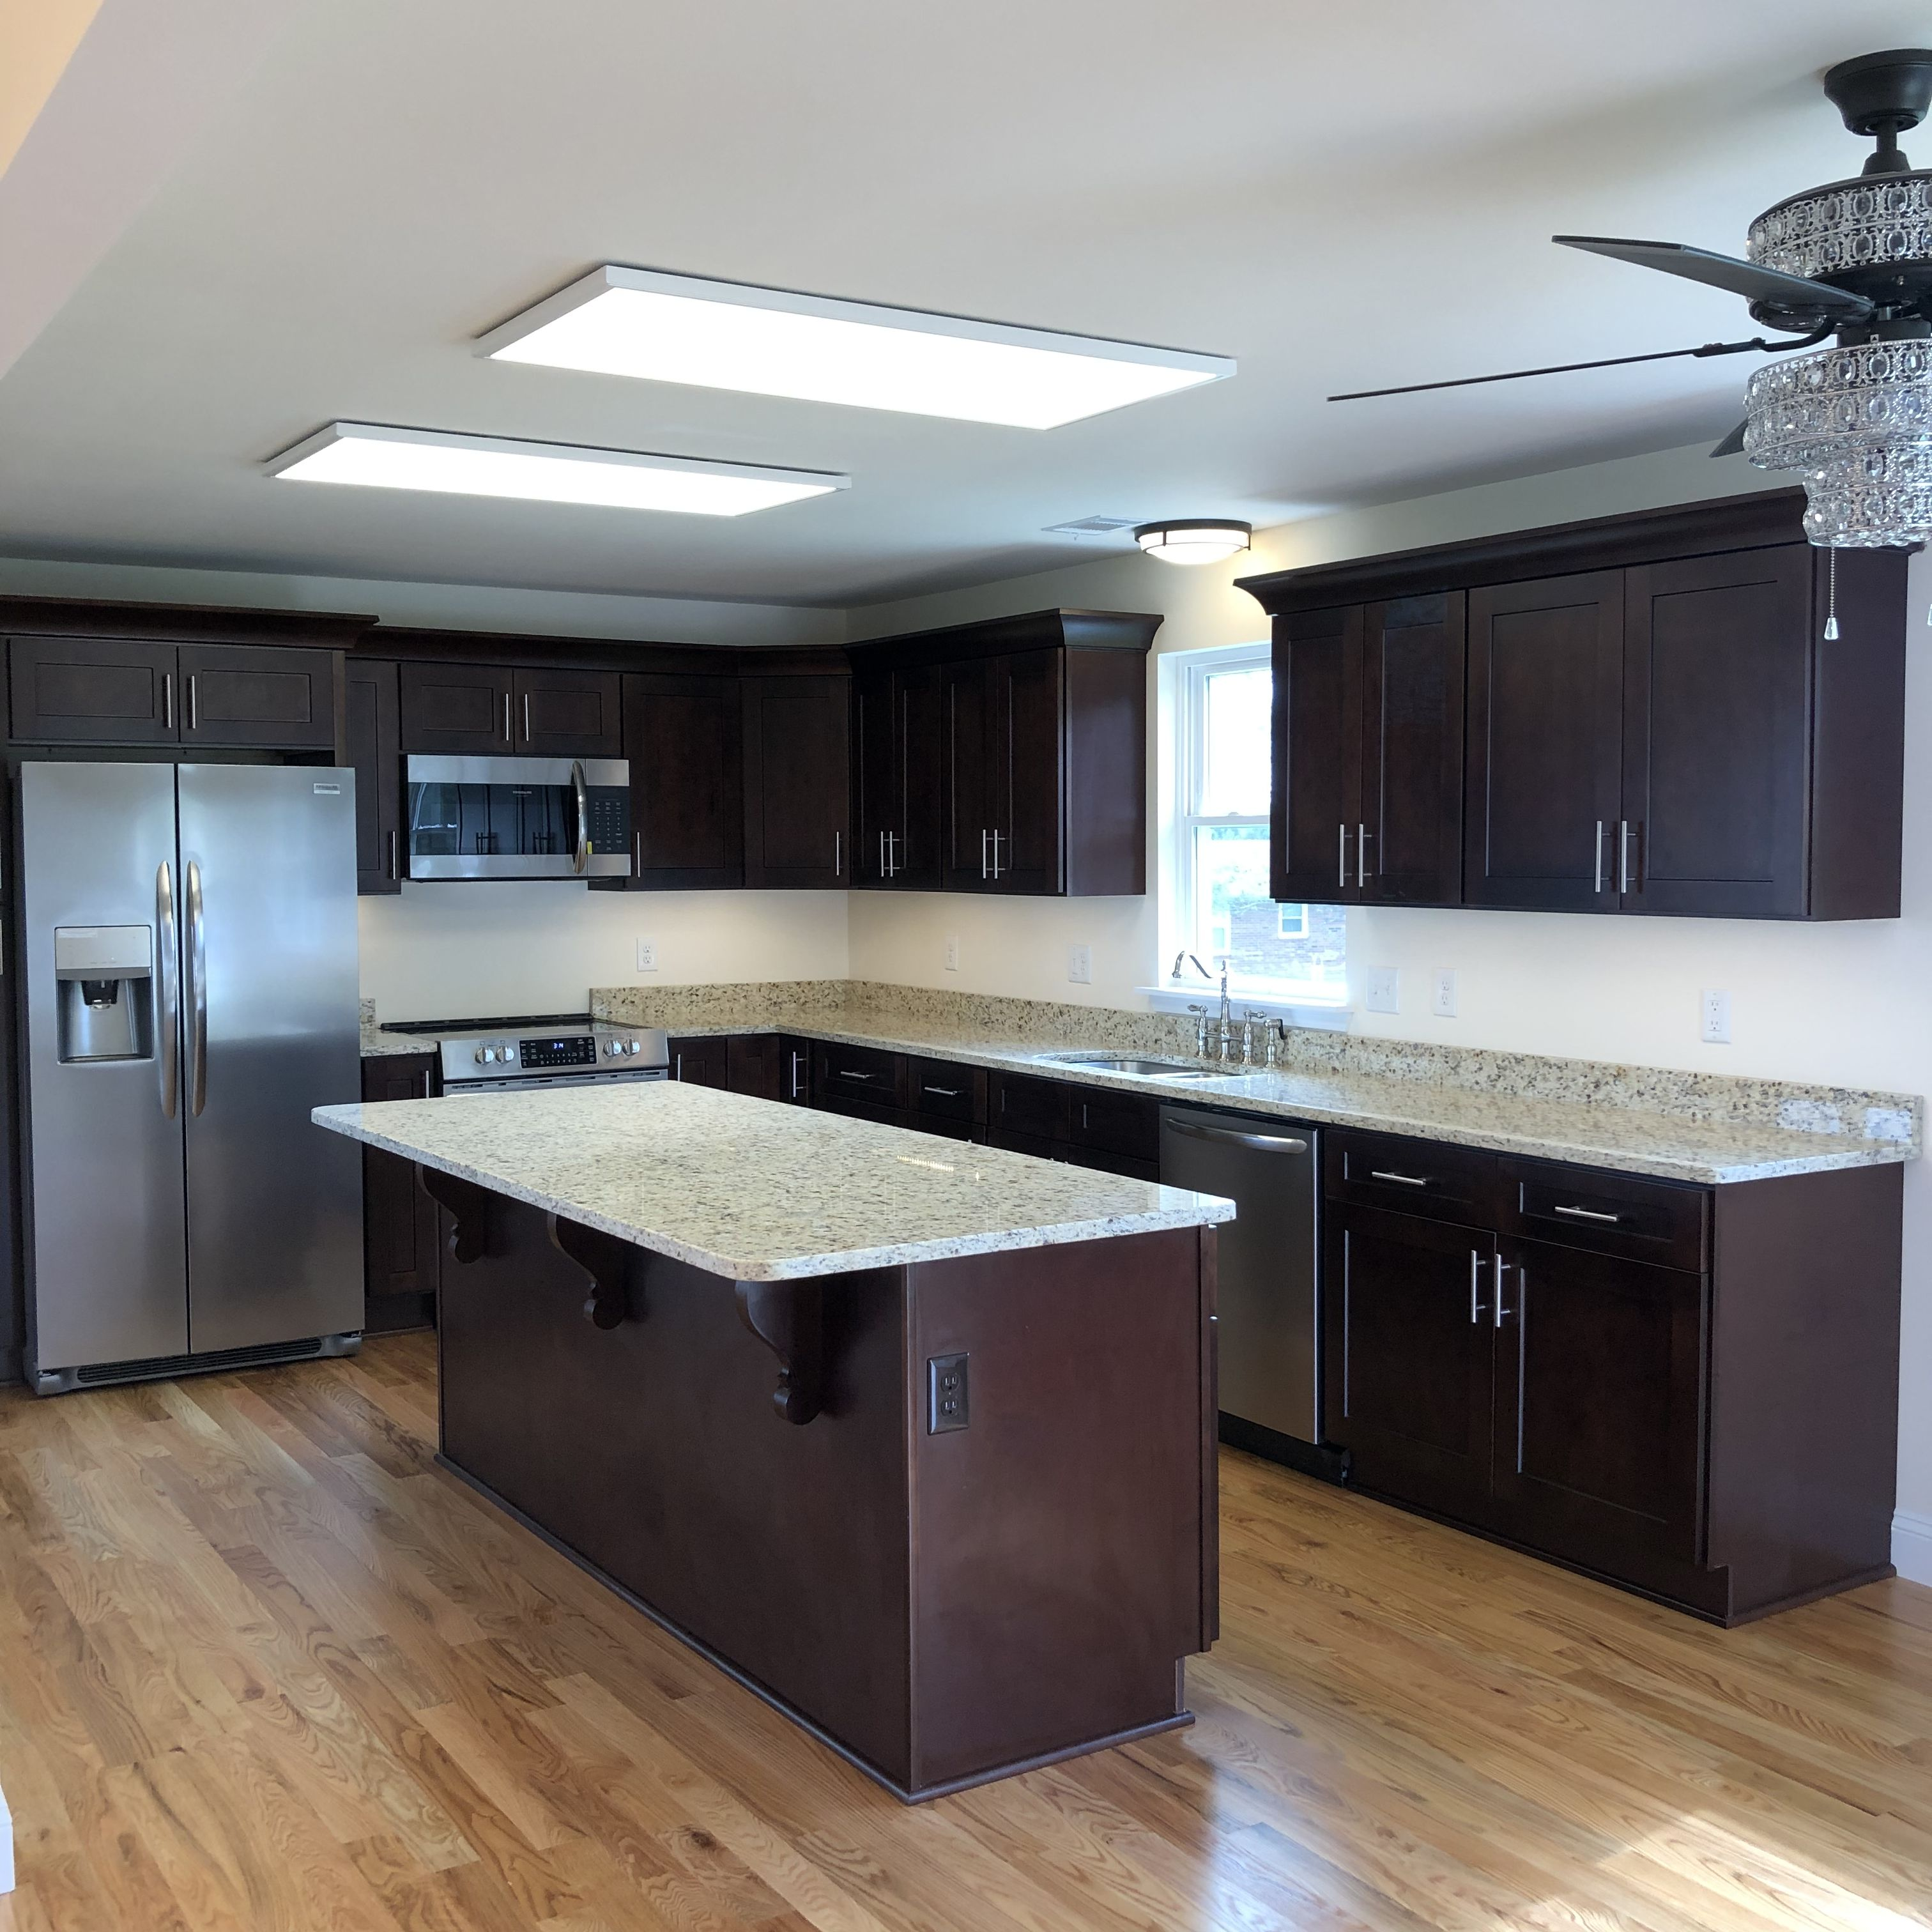 Kitchen Island Additions: Kitchen Islands Can Be An Important Addition To Any